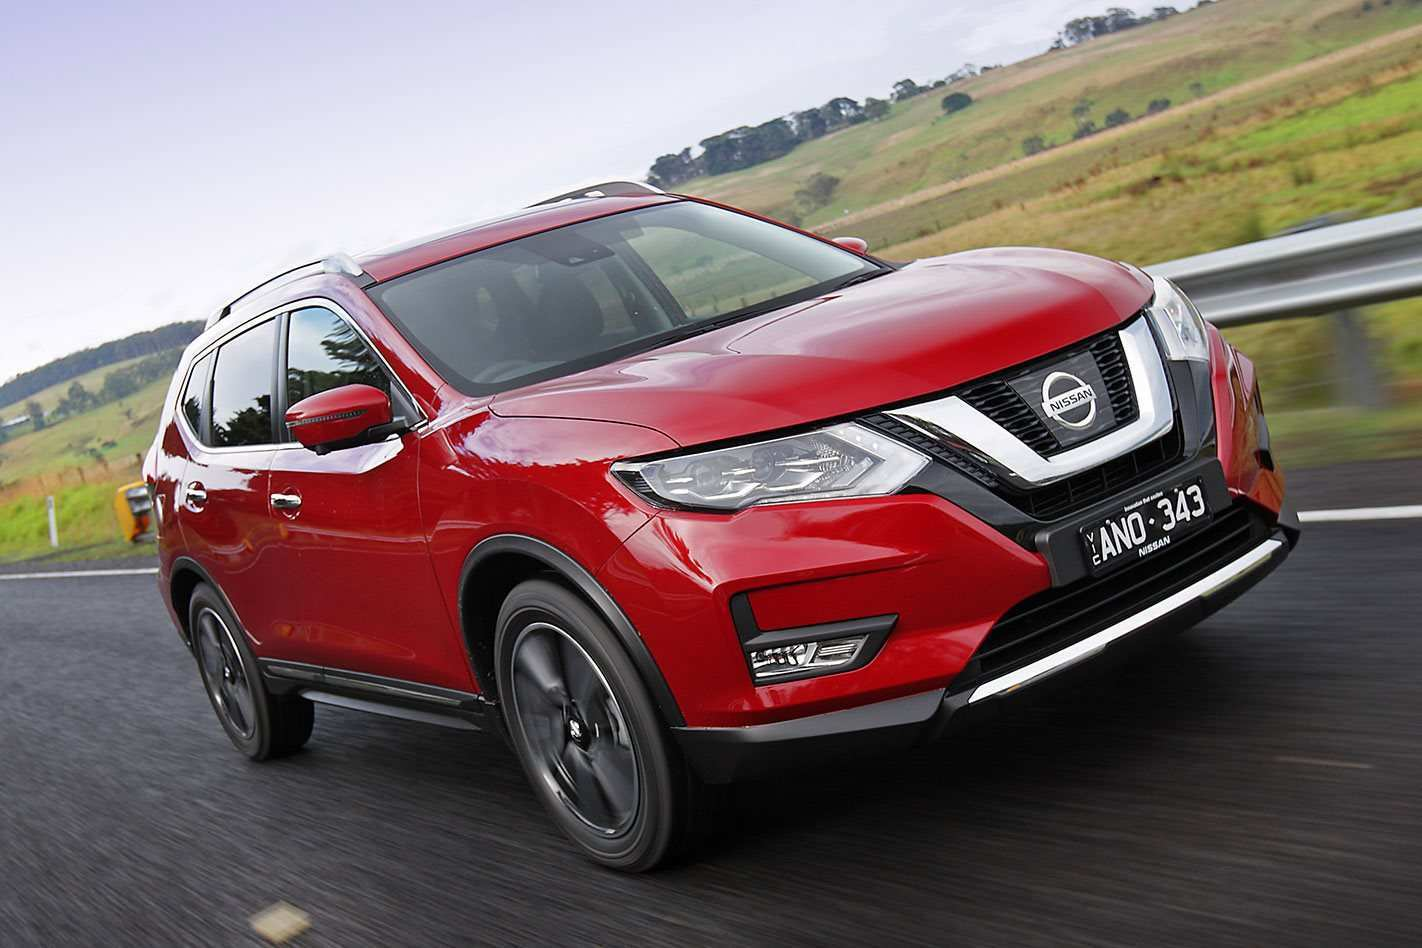 22 Great Nissan X Trail 2019 Review History for Nissan X Trail 2019 Review